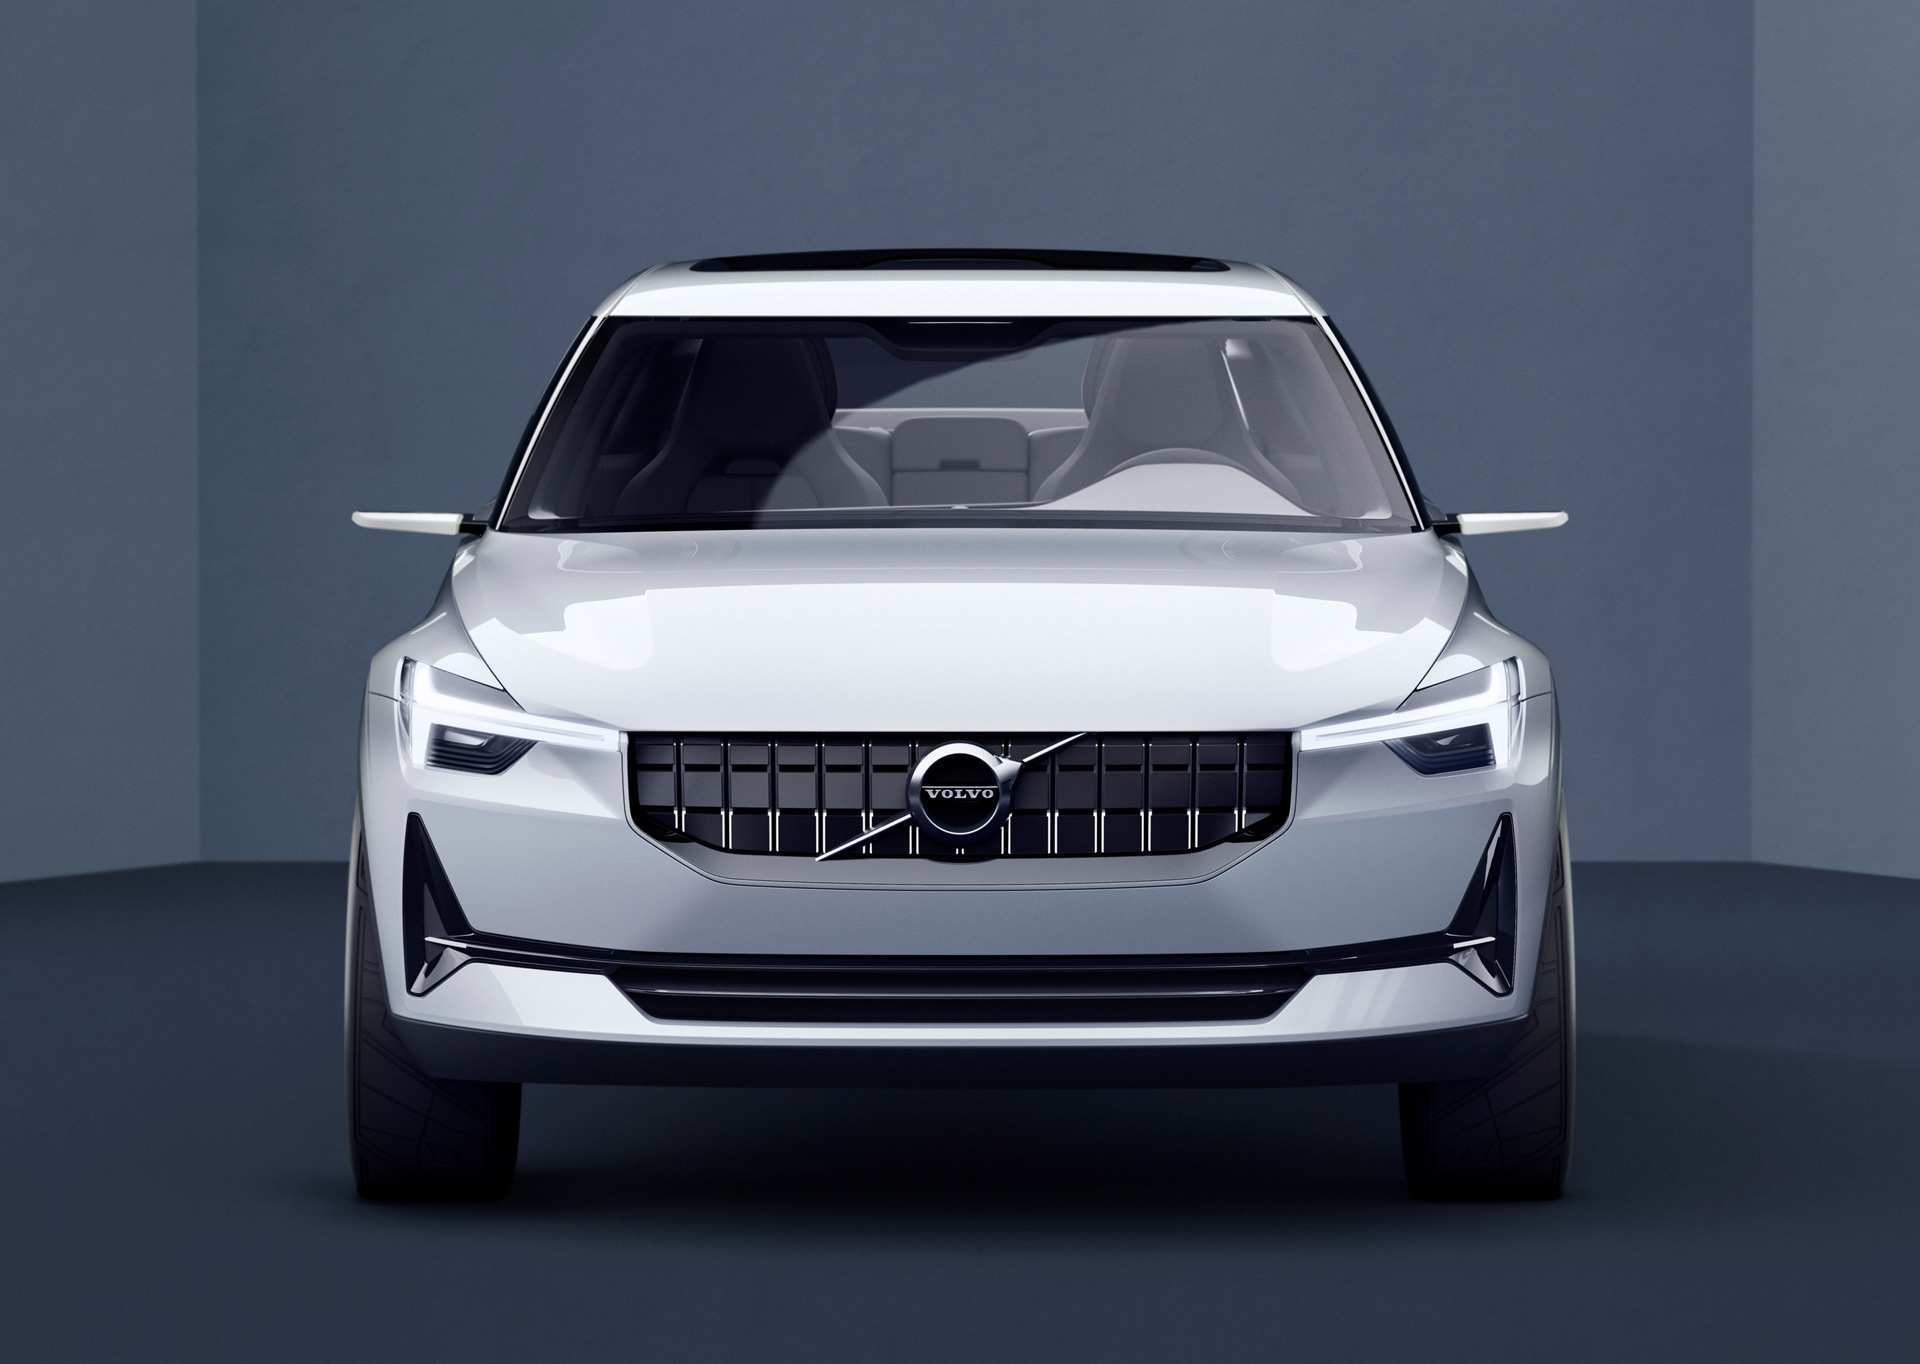 38 All New Volvo 2020 Car History with Volvo 2020 Car